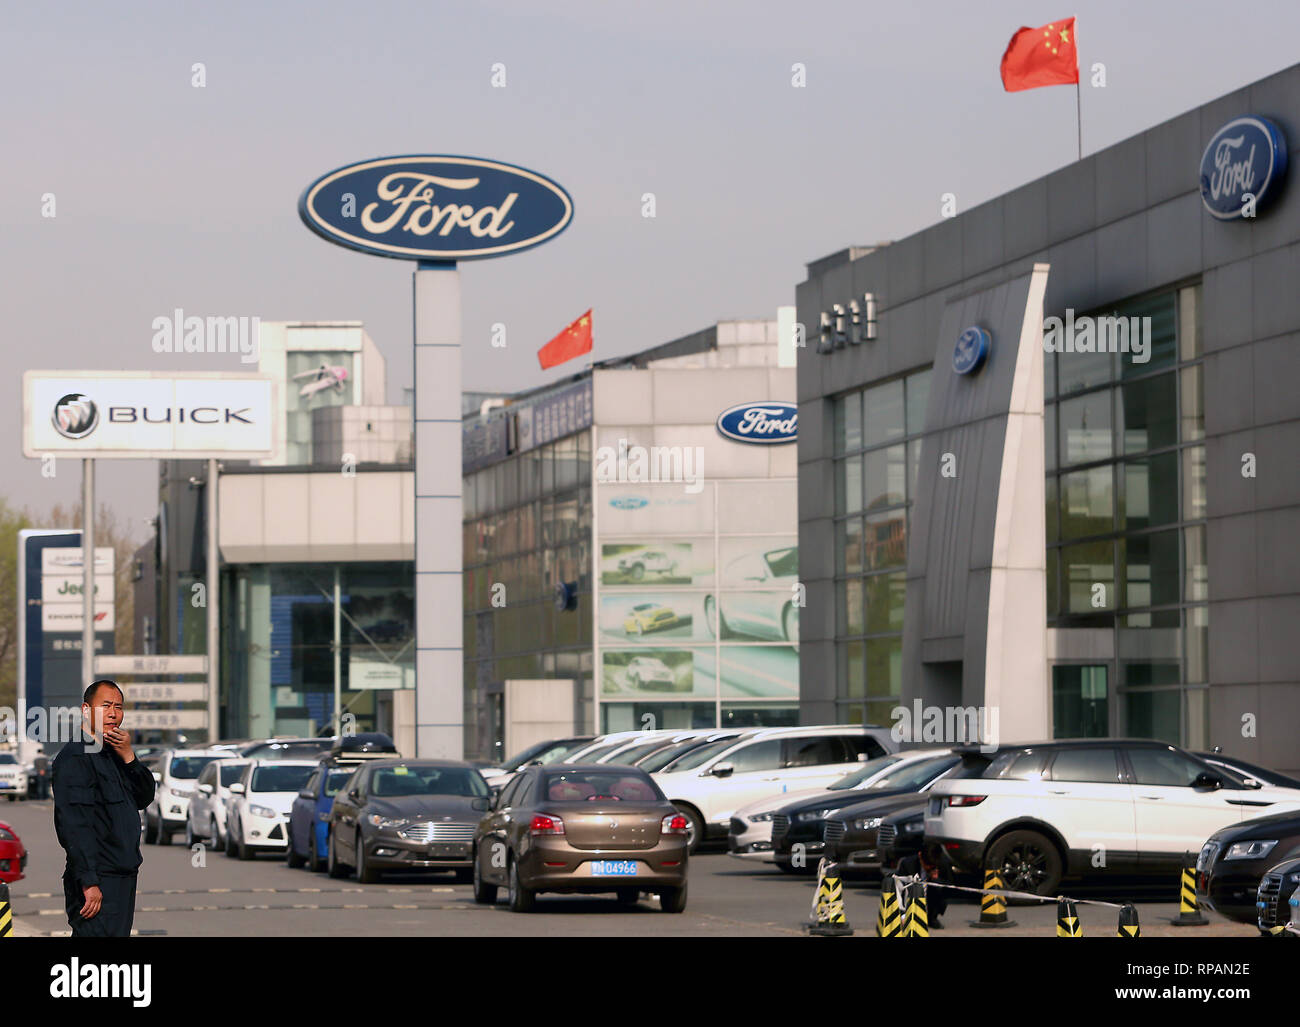 April 8, 2018 - Beijing, China - Chinese national flags fly over Ford and Buick showrooms in Beijing on April 8, 2018.  China hit back at the U.S. with proposed tariffs on $50 billion worth of goods - American cars, soybeans, whiskey and other goods.. (Credit Image: © Todd Lee/ZUMAprilESS.com/ZUMA Wire) Stock Photo